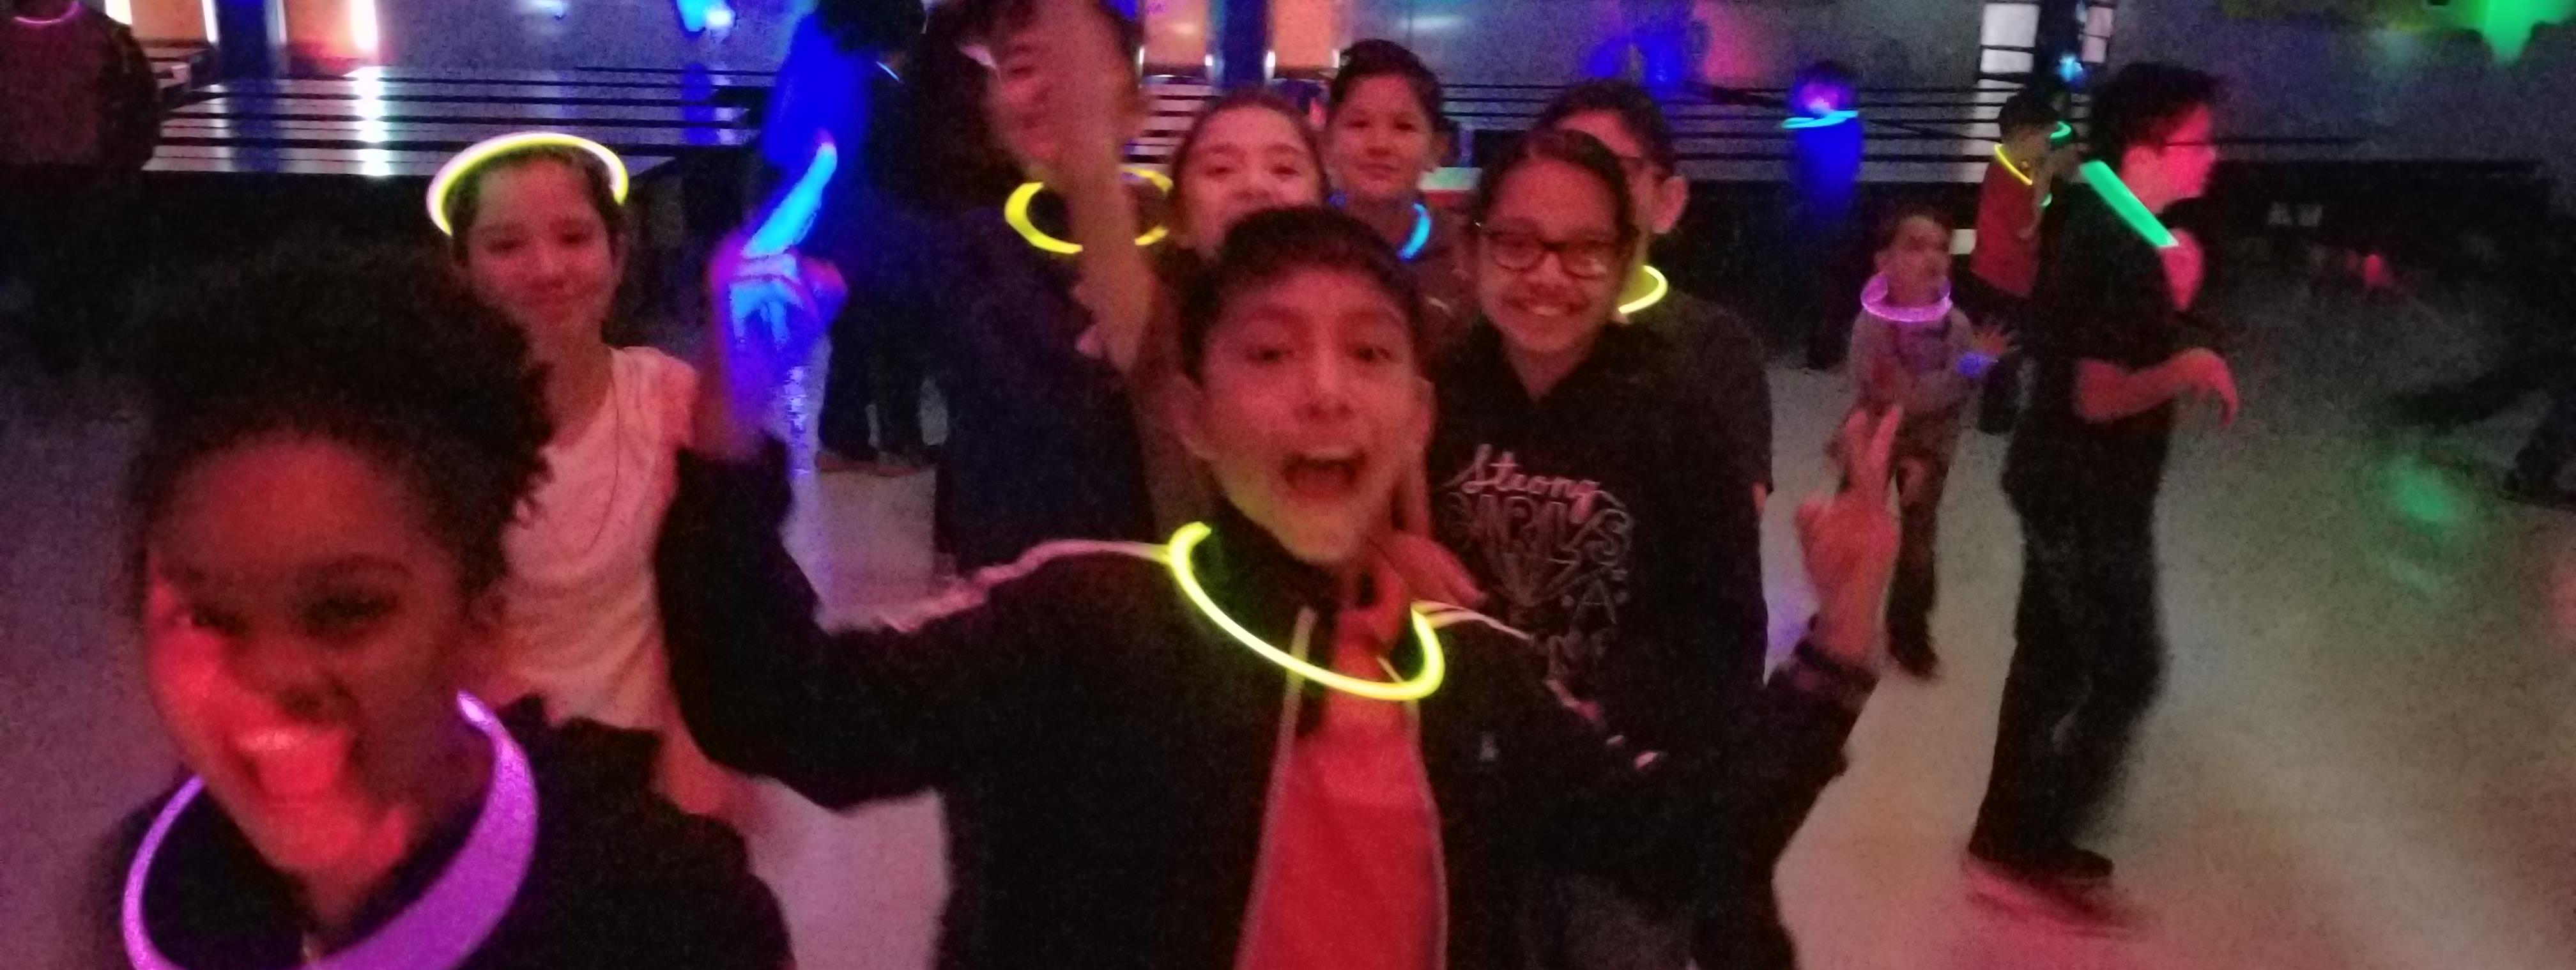 enjoying a GLOW party!